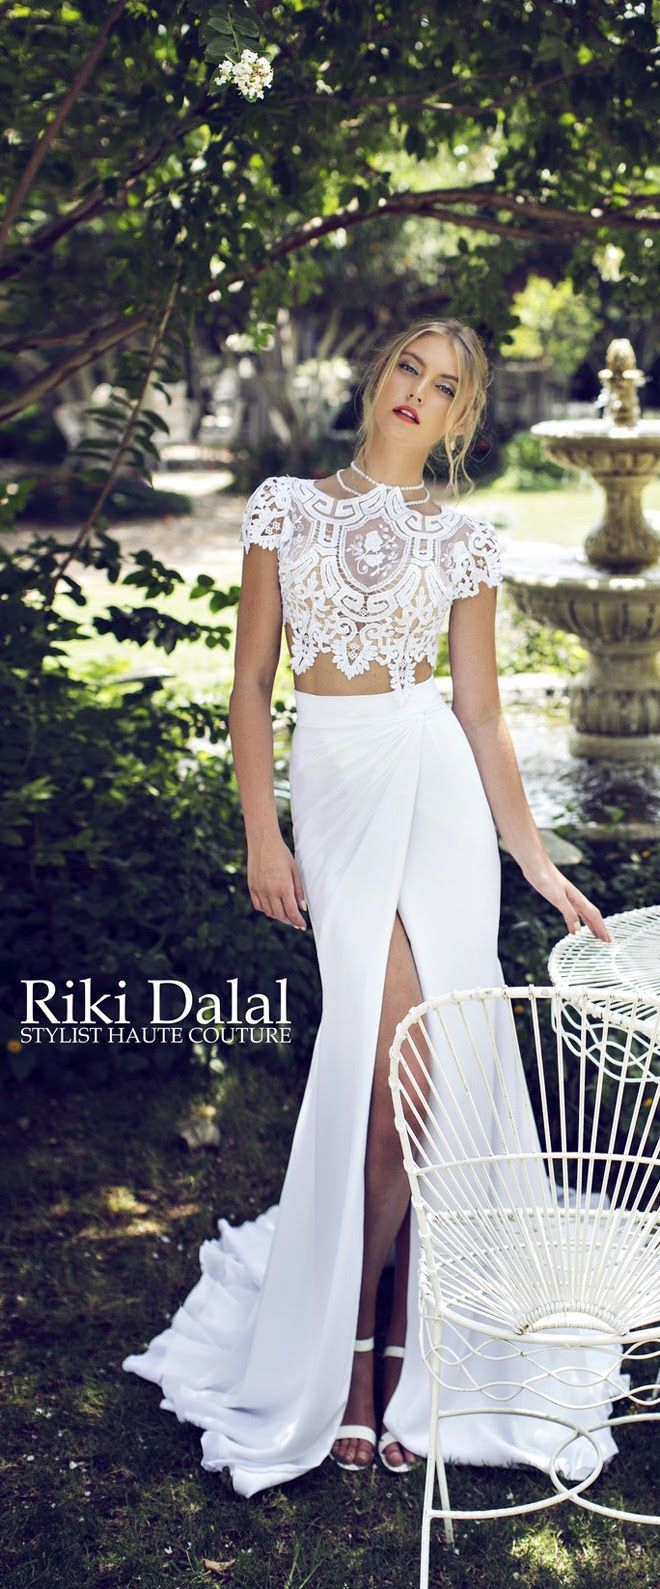 Wedding Dresses by Riki Dalal - Provence Collection http://www.prom-dressuk.com/prom-dresses-uk63_1